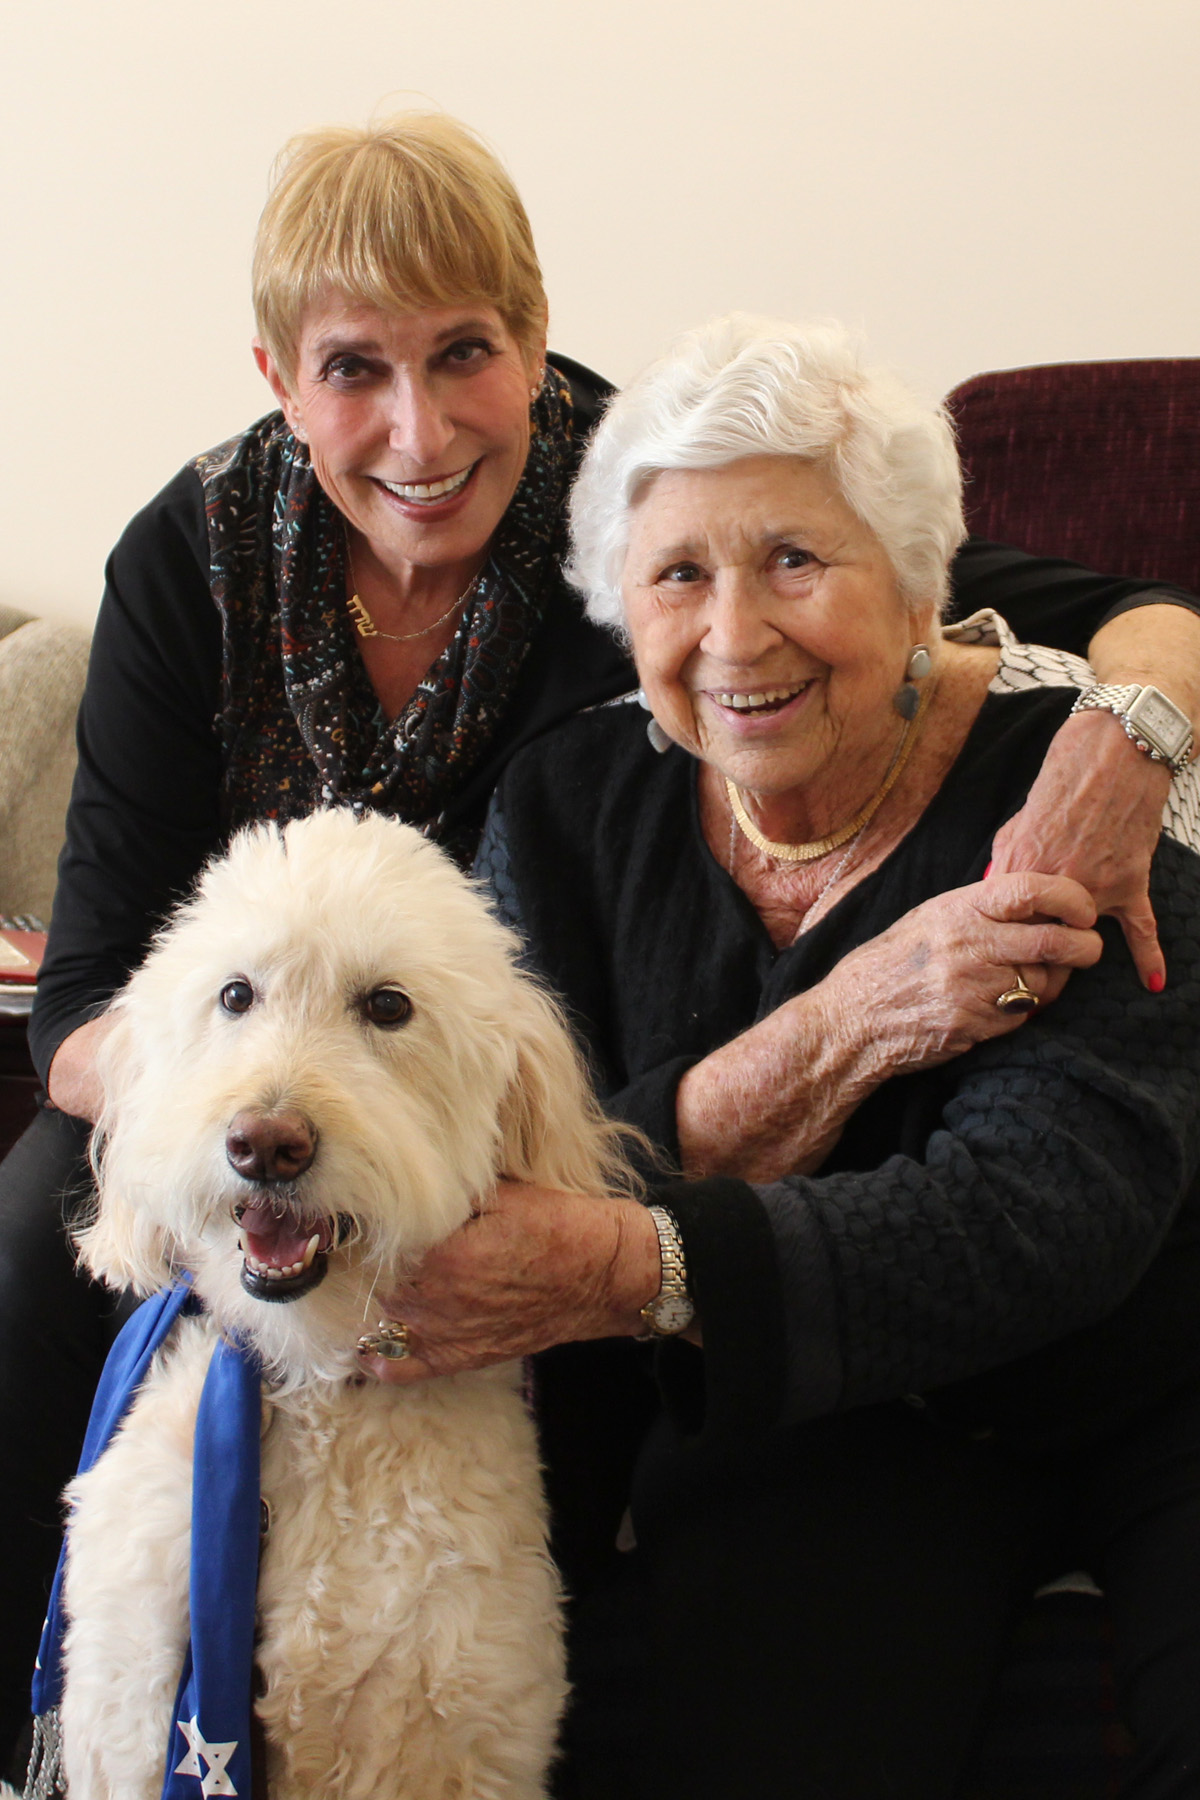 The Mutual Benefits of Pet Therapy